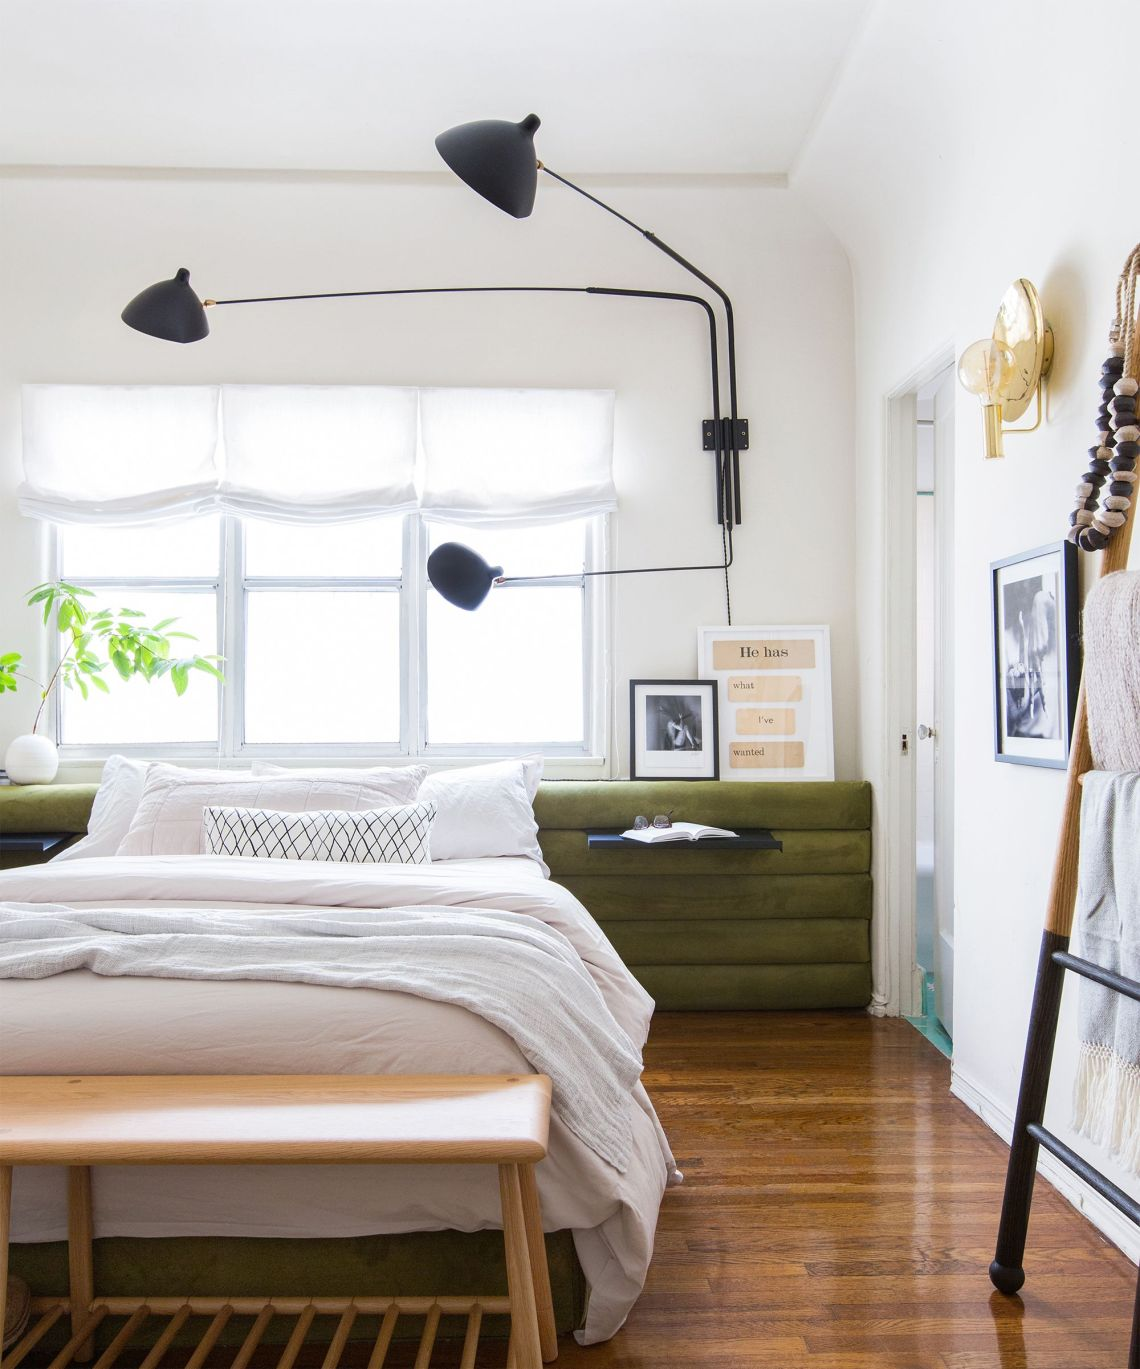 Bedroom Ideas You Havent Seen A Million Times Before